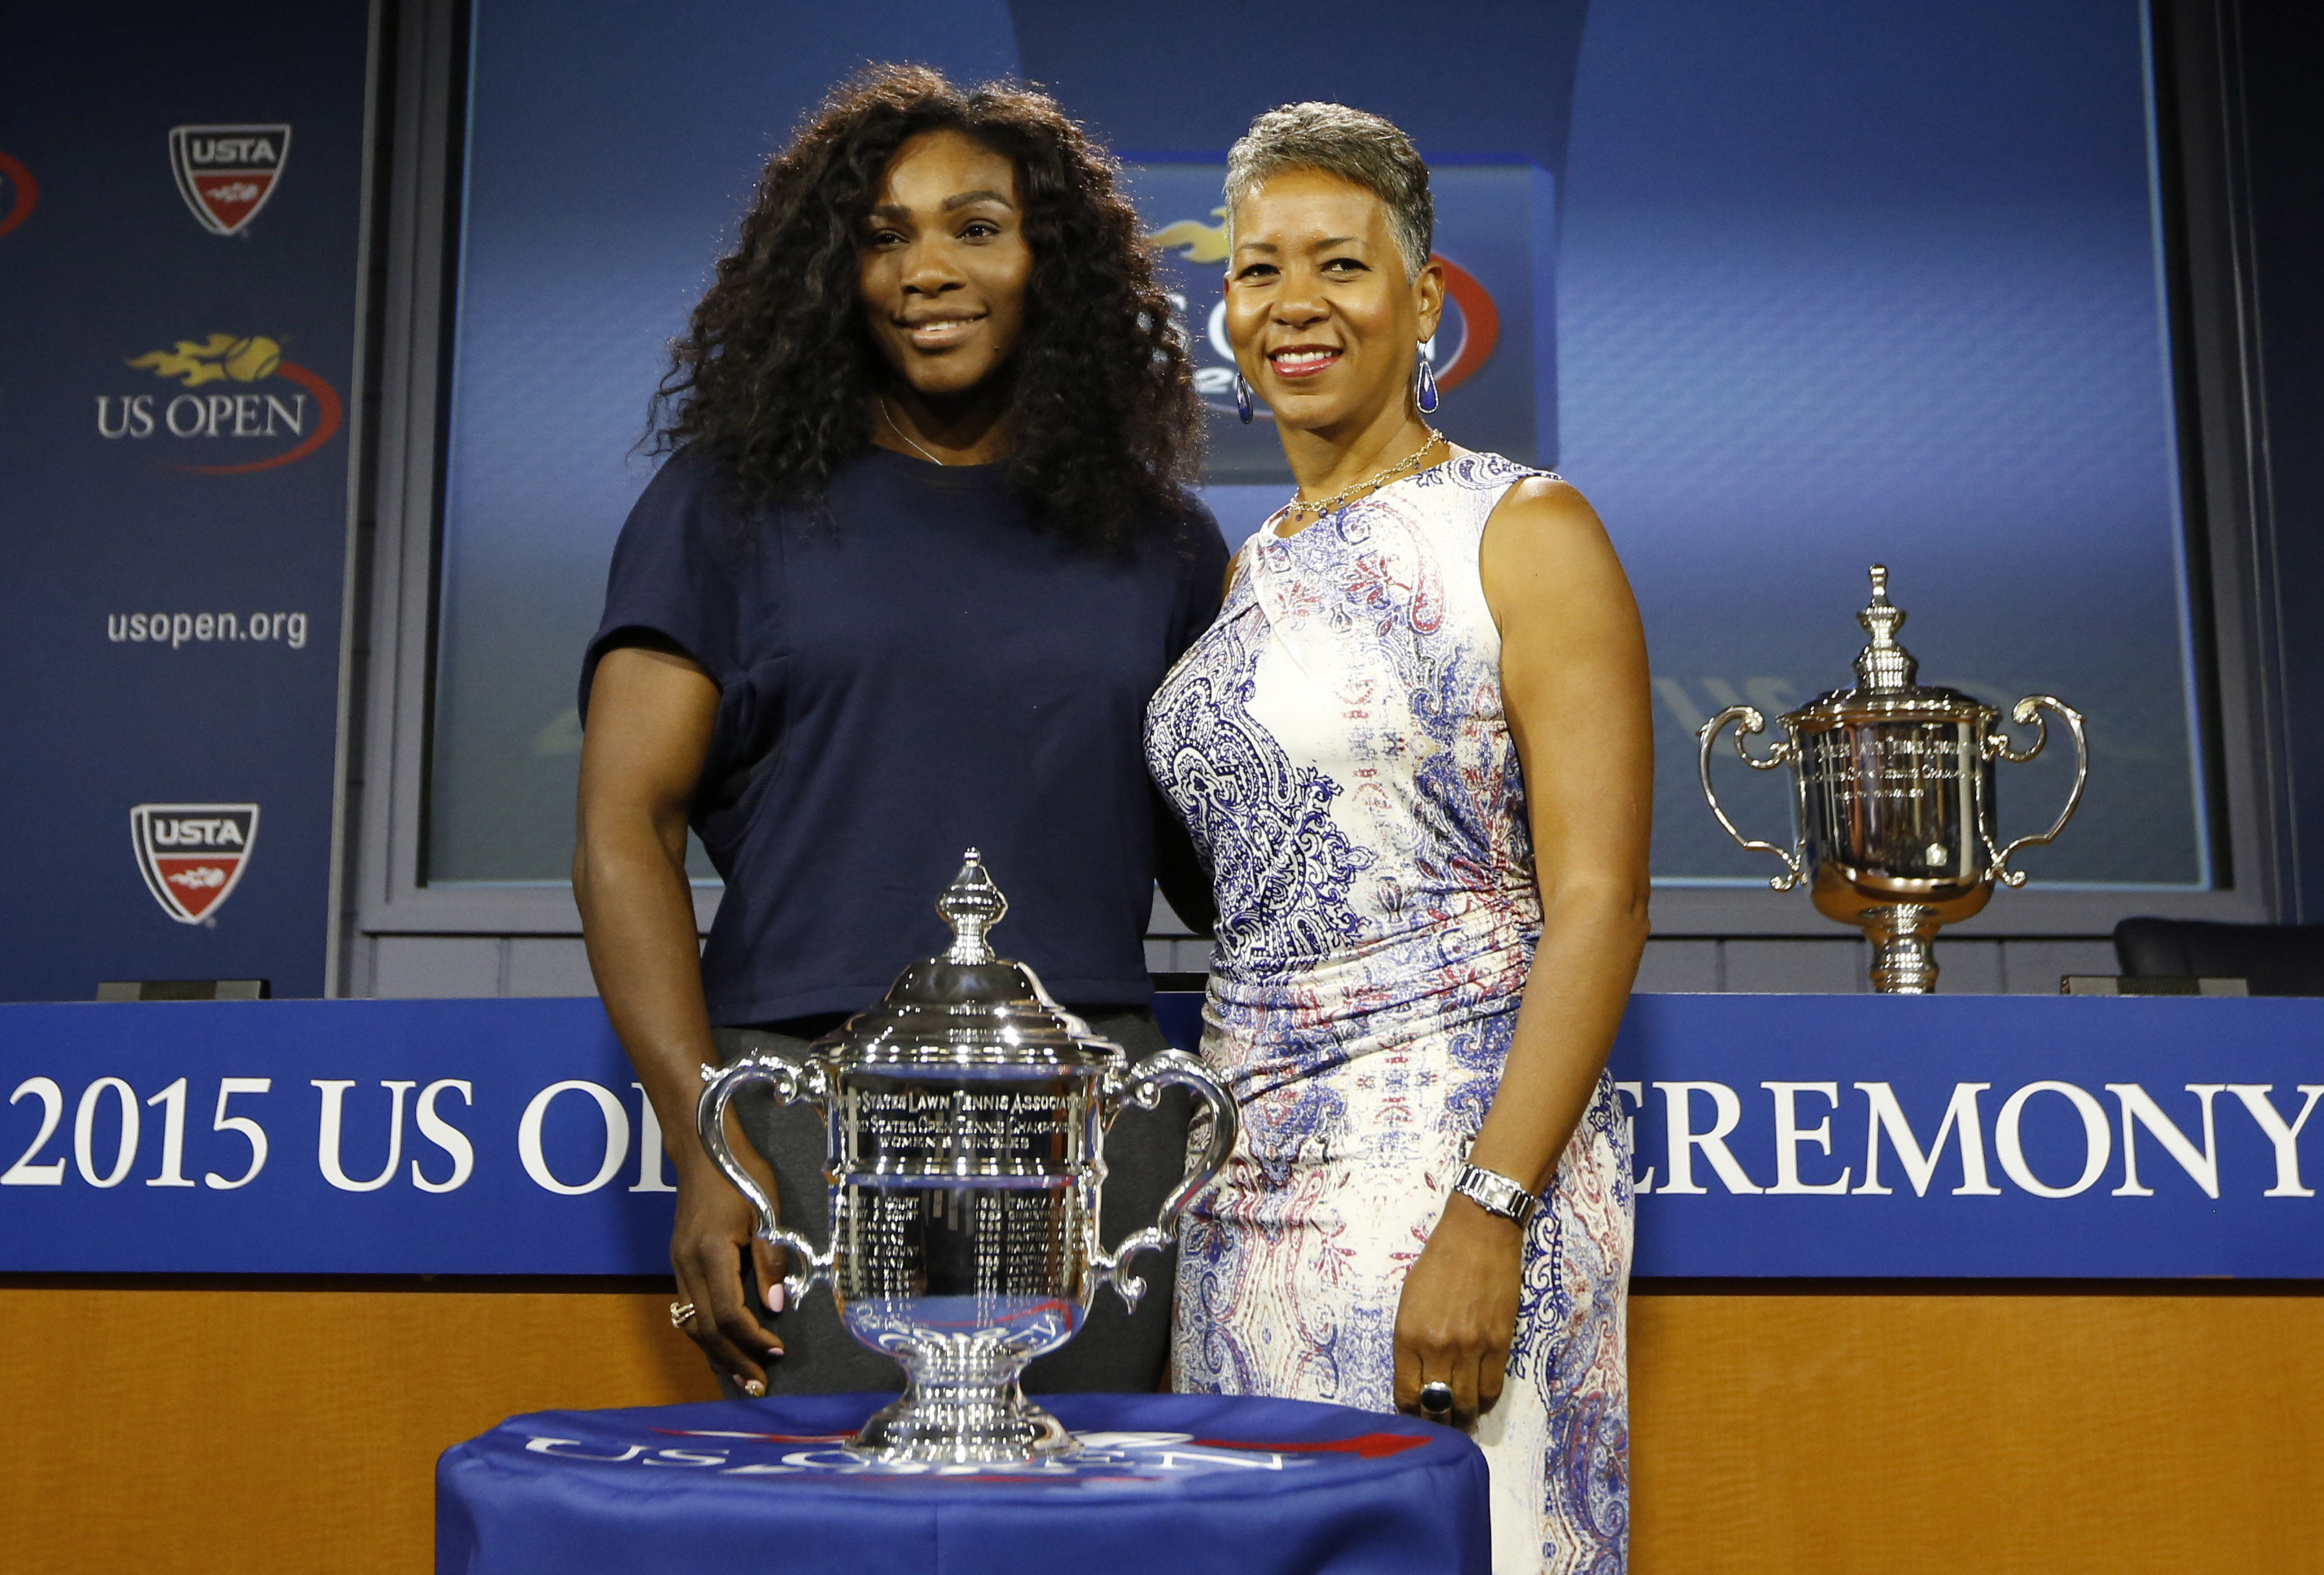 Defending U.S. Open Tennis women's singles champion Serena Williams, left, of the United States, poses with USTA president Katrina Adams and the women's singles trophy following a news conference and the U.S. Open draw ceremony at the USTA Billie Jean King National Tennis Center in New York, Thursday, Aug. 27, 2015.